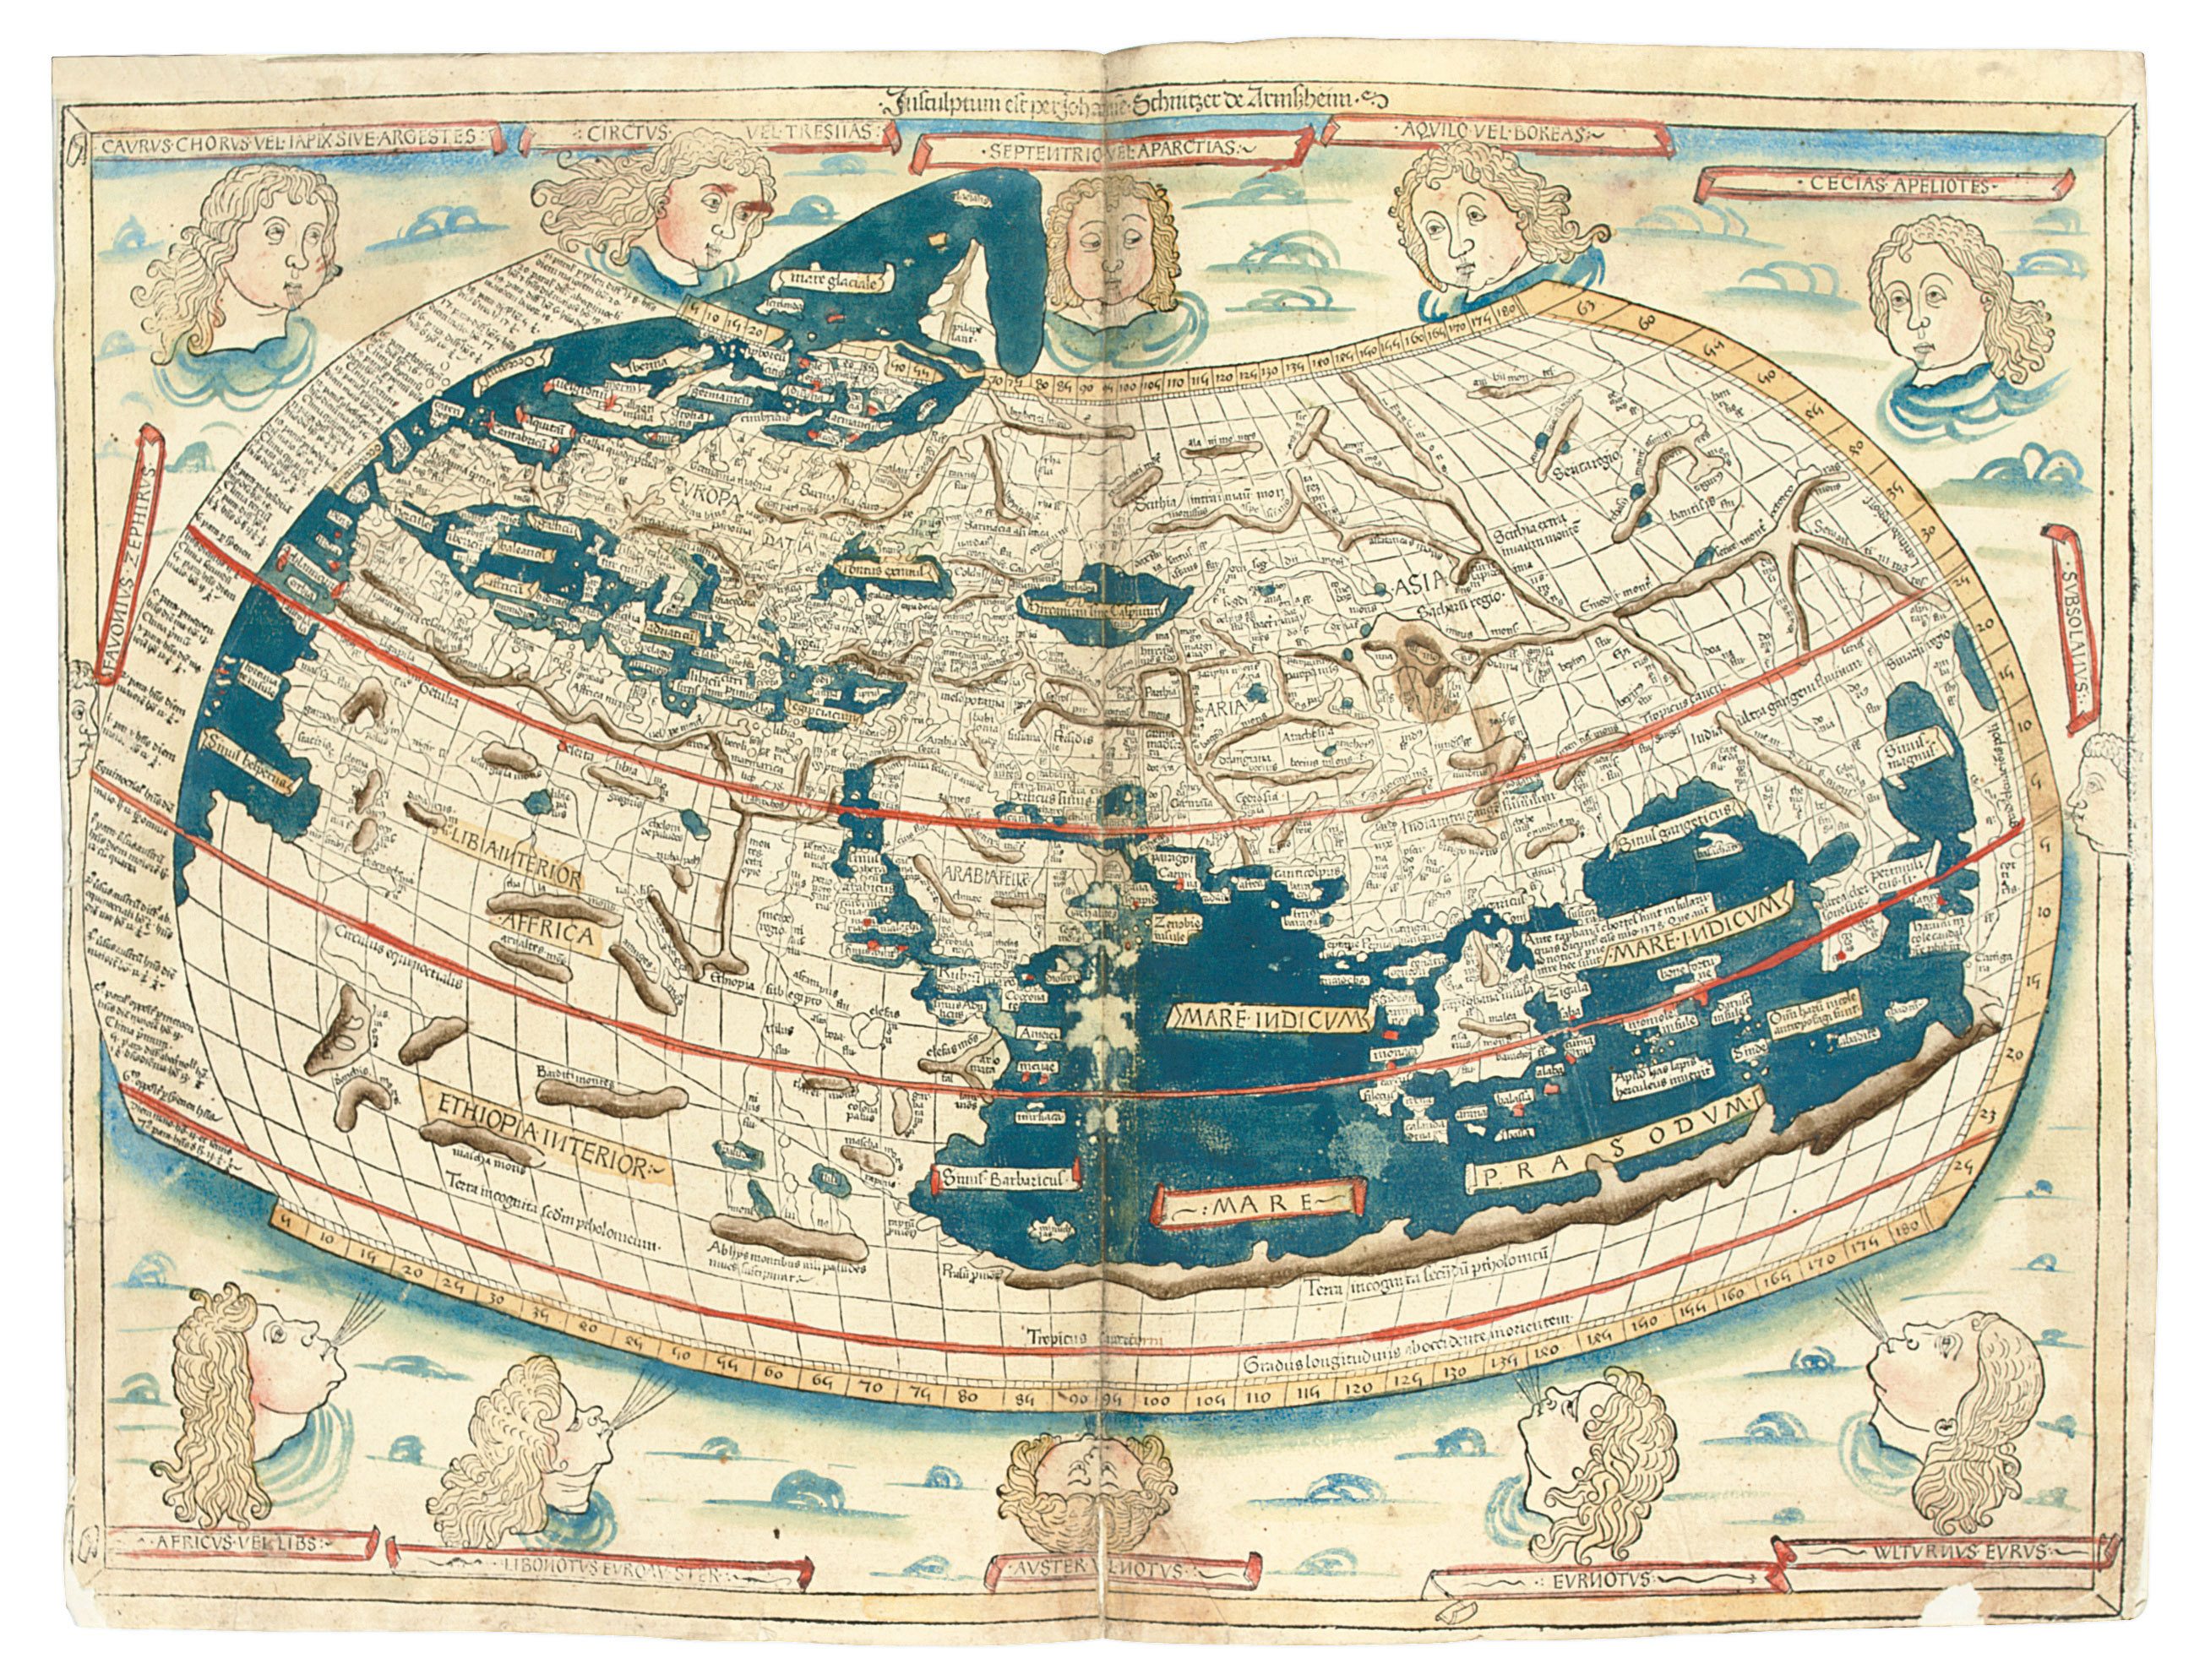 2010_CKS_07882_0054_000(ptolemaeus_claudius_cosmographia_translated_from_greek_into_latin_by_j)